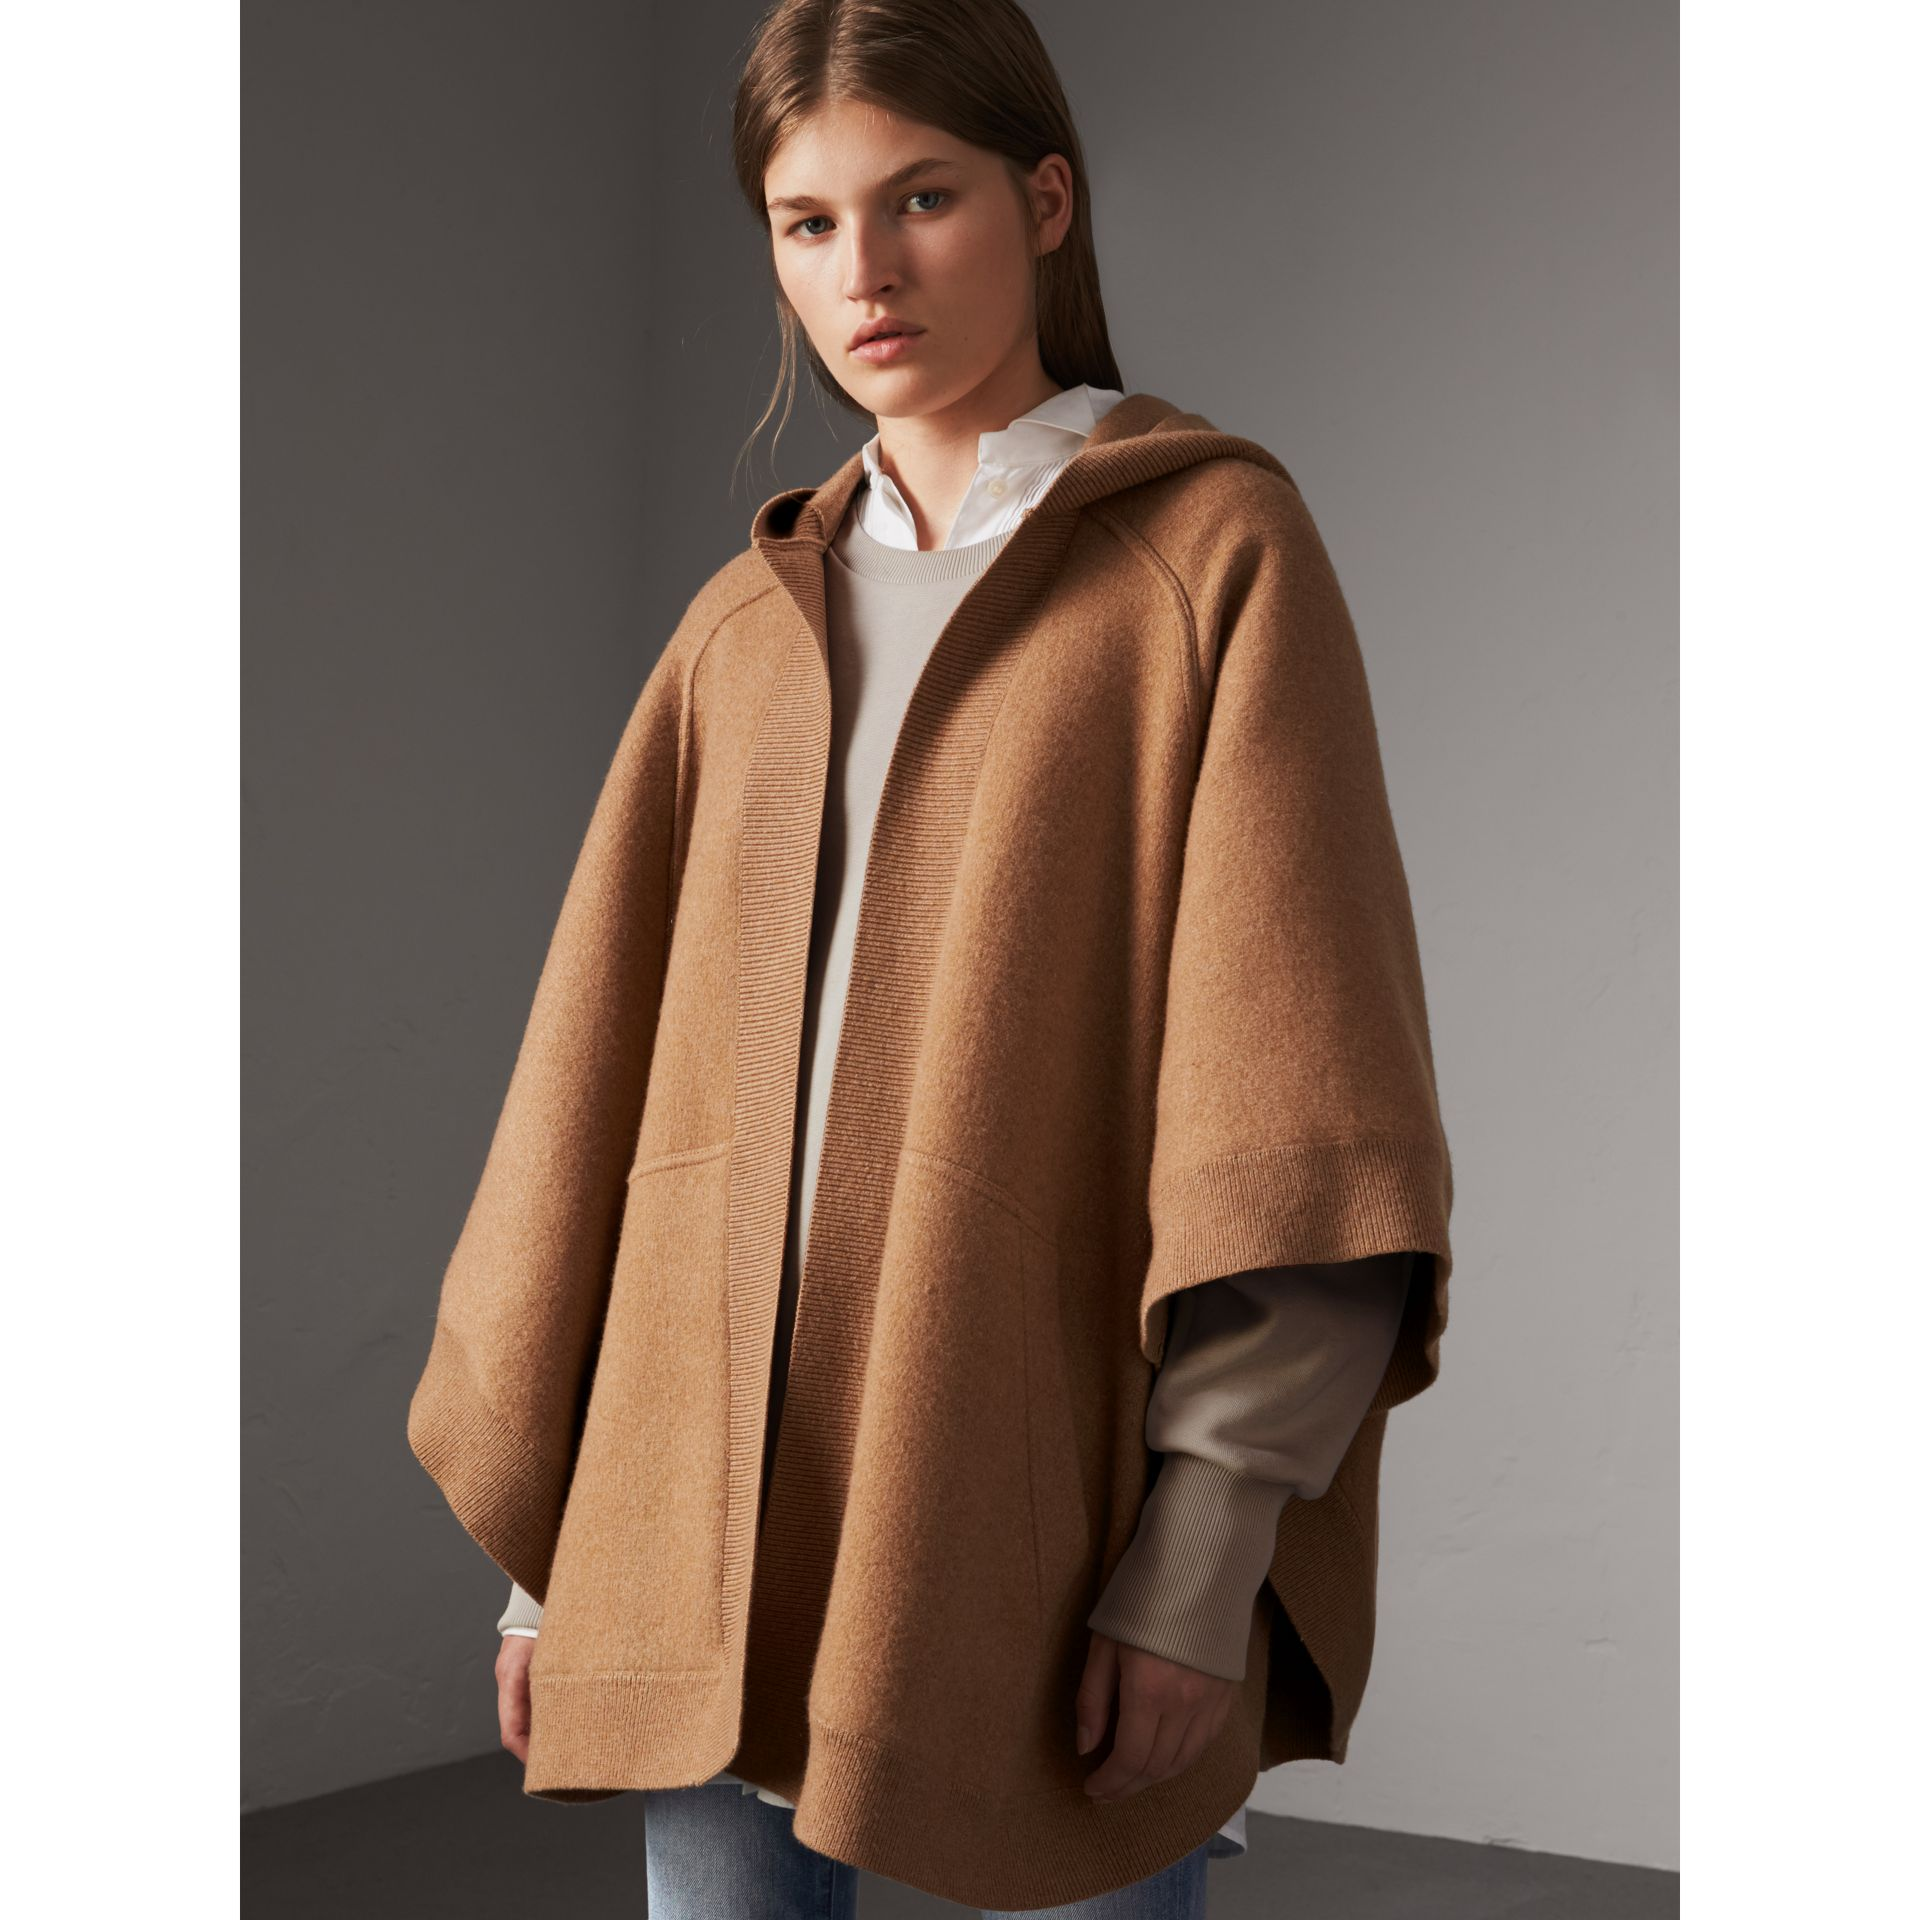 Wool Cashmere Blend Hooded Poncho in Camel - Women | Burberry - gallery image 4